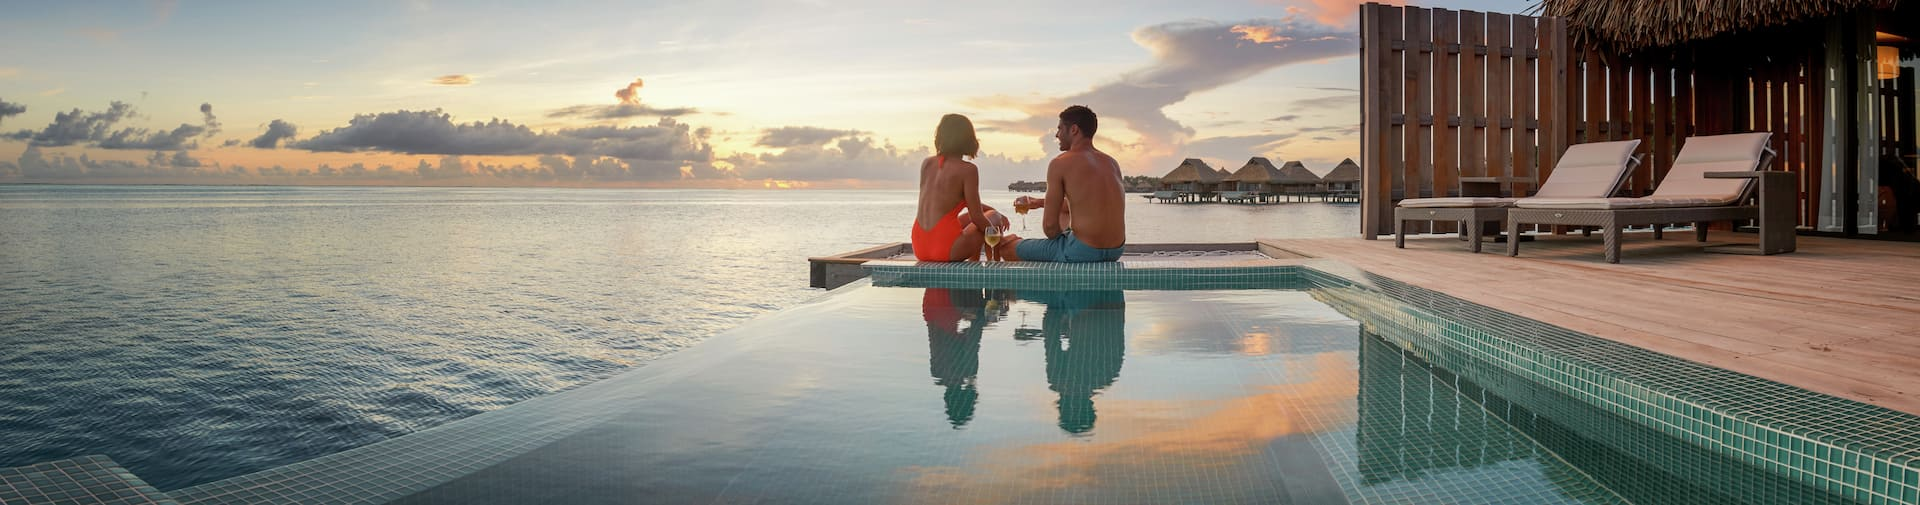 A couple perched on the edge of an infinity pool looking out to the ocean at sunset.